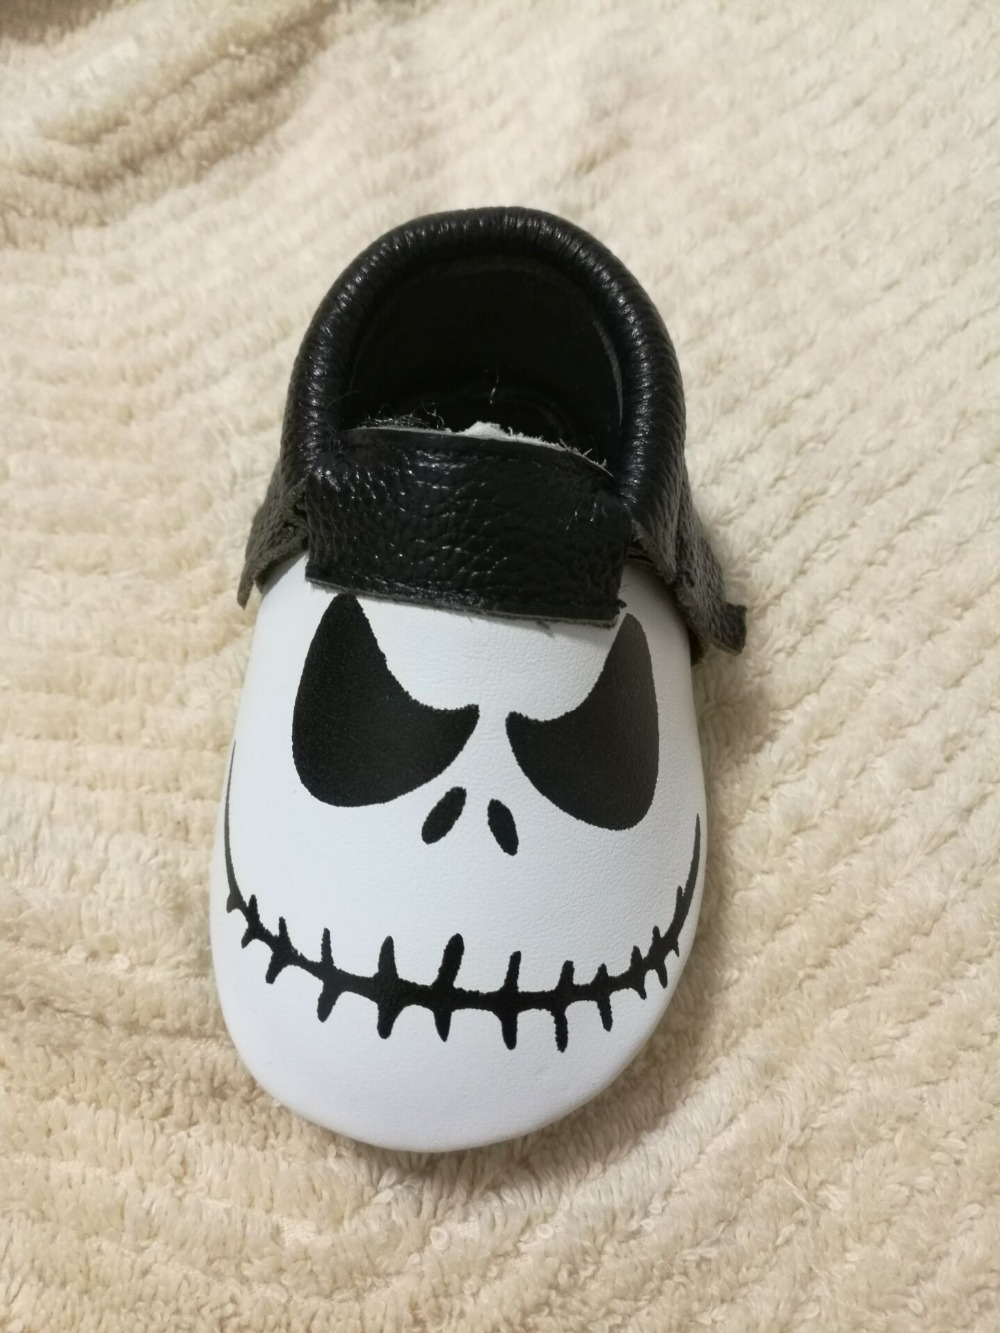 New-Stylish-Genuine-Leather-Baby-Moccasins-Shoes-Halloween-presents-for-bebe-Baby-Shoes-Newborn-first-walker (5)